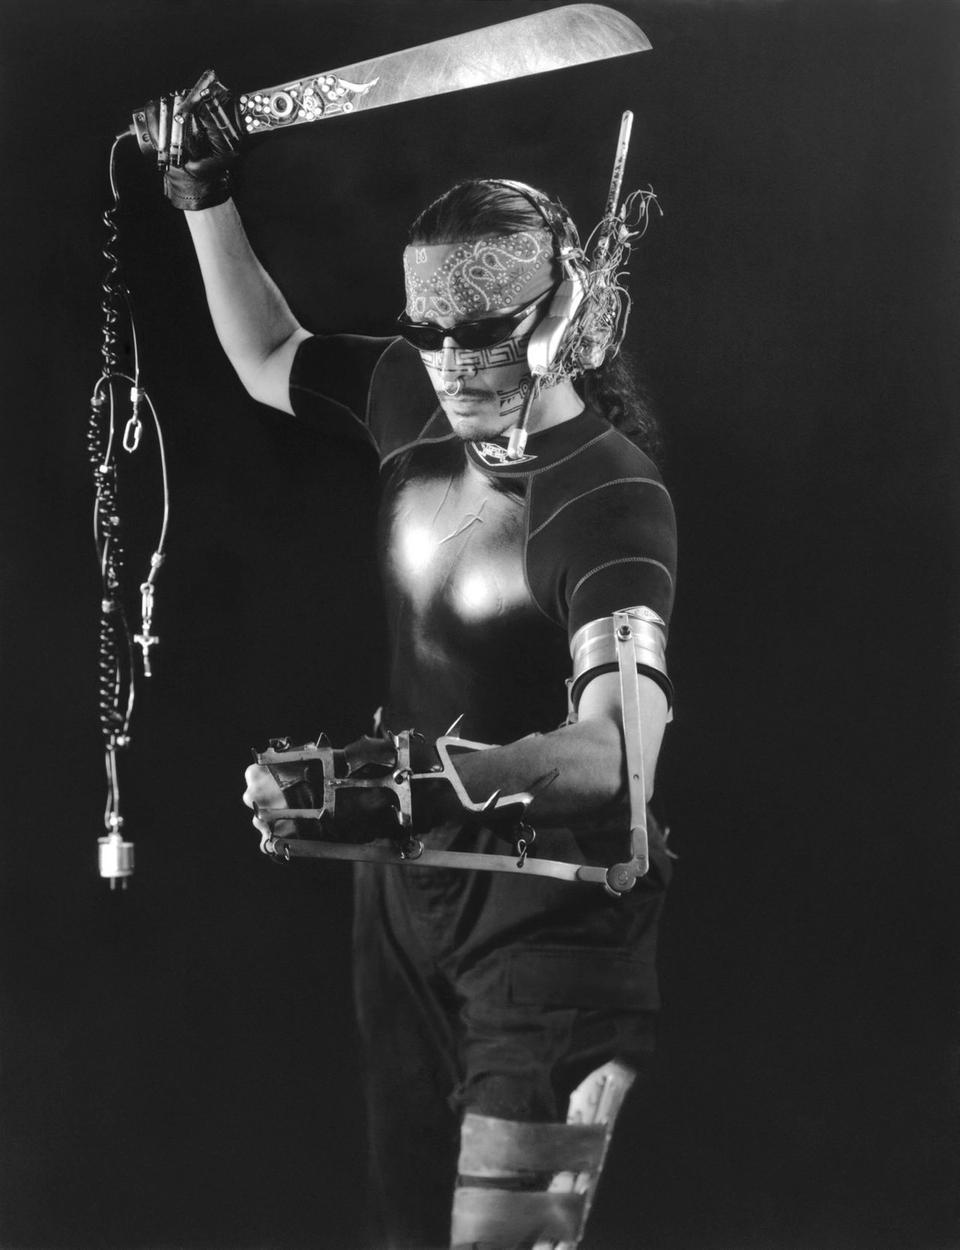 Roberto Sifuentes in latino cyborg garb. Machete in right hand, sunglasses, metallic prosthesis surrounding his left arm.